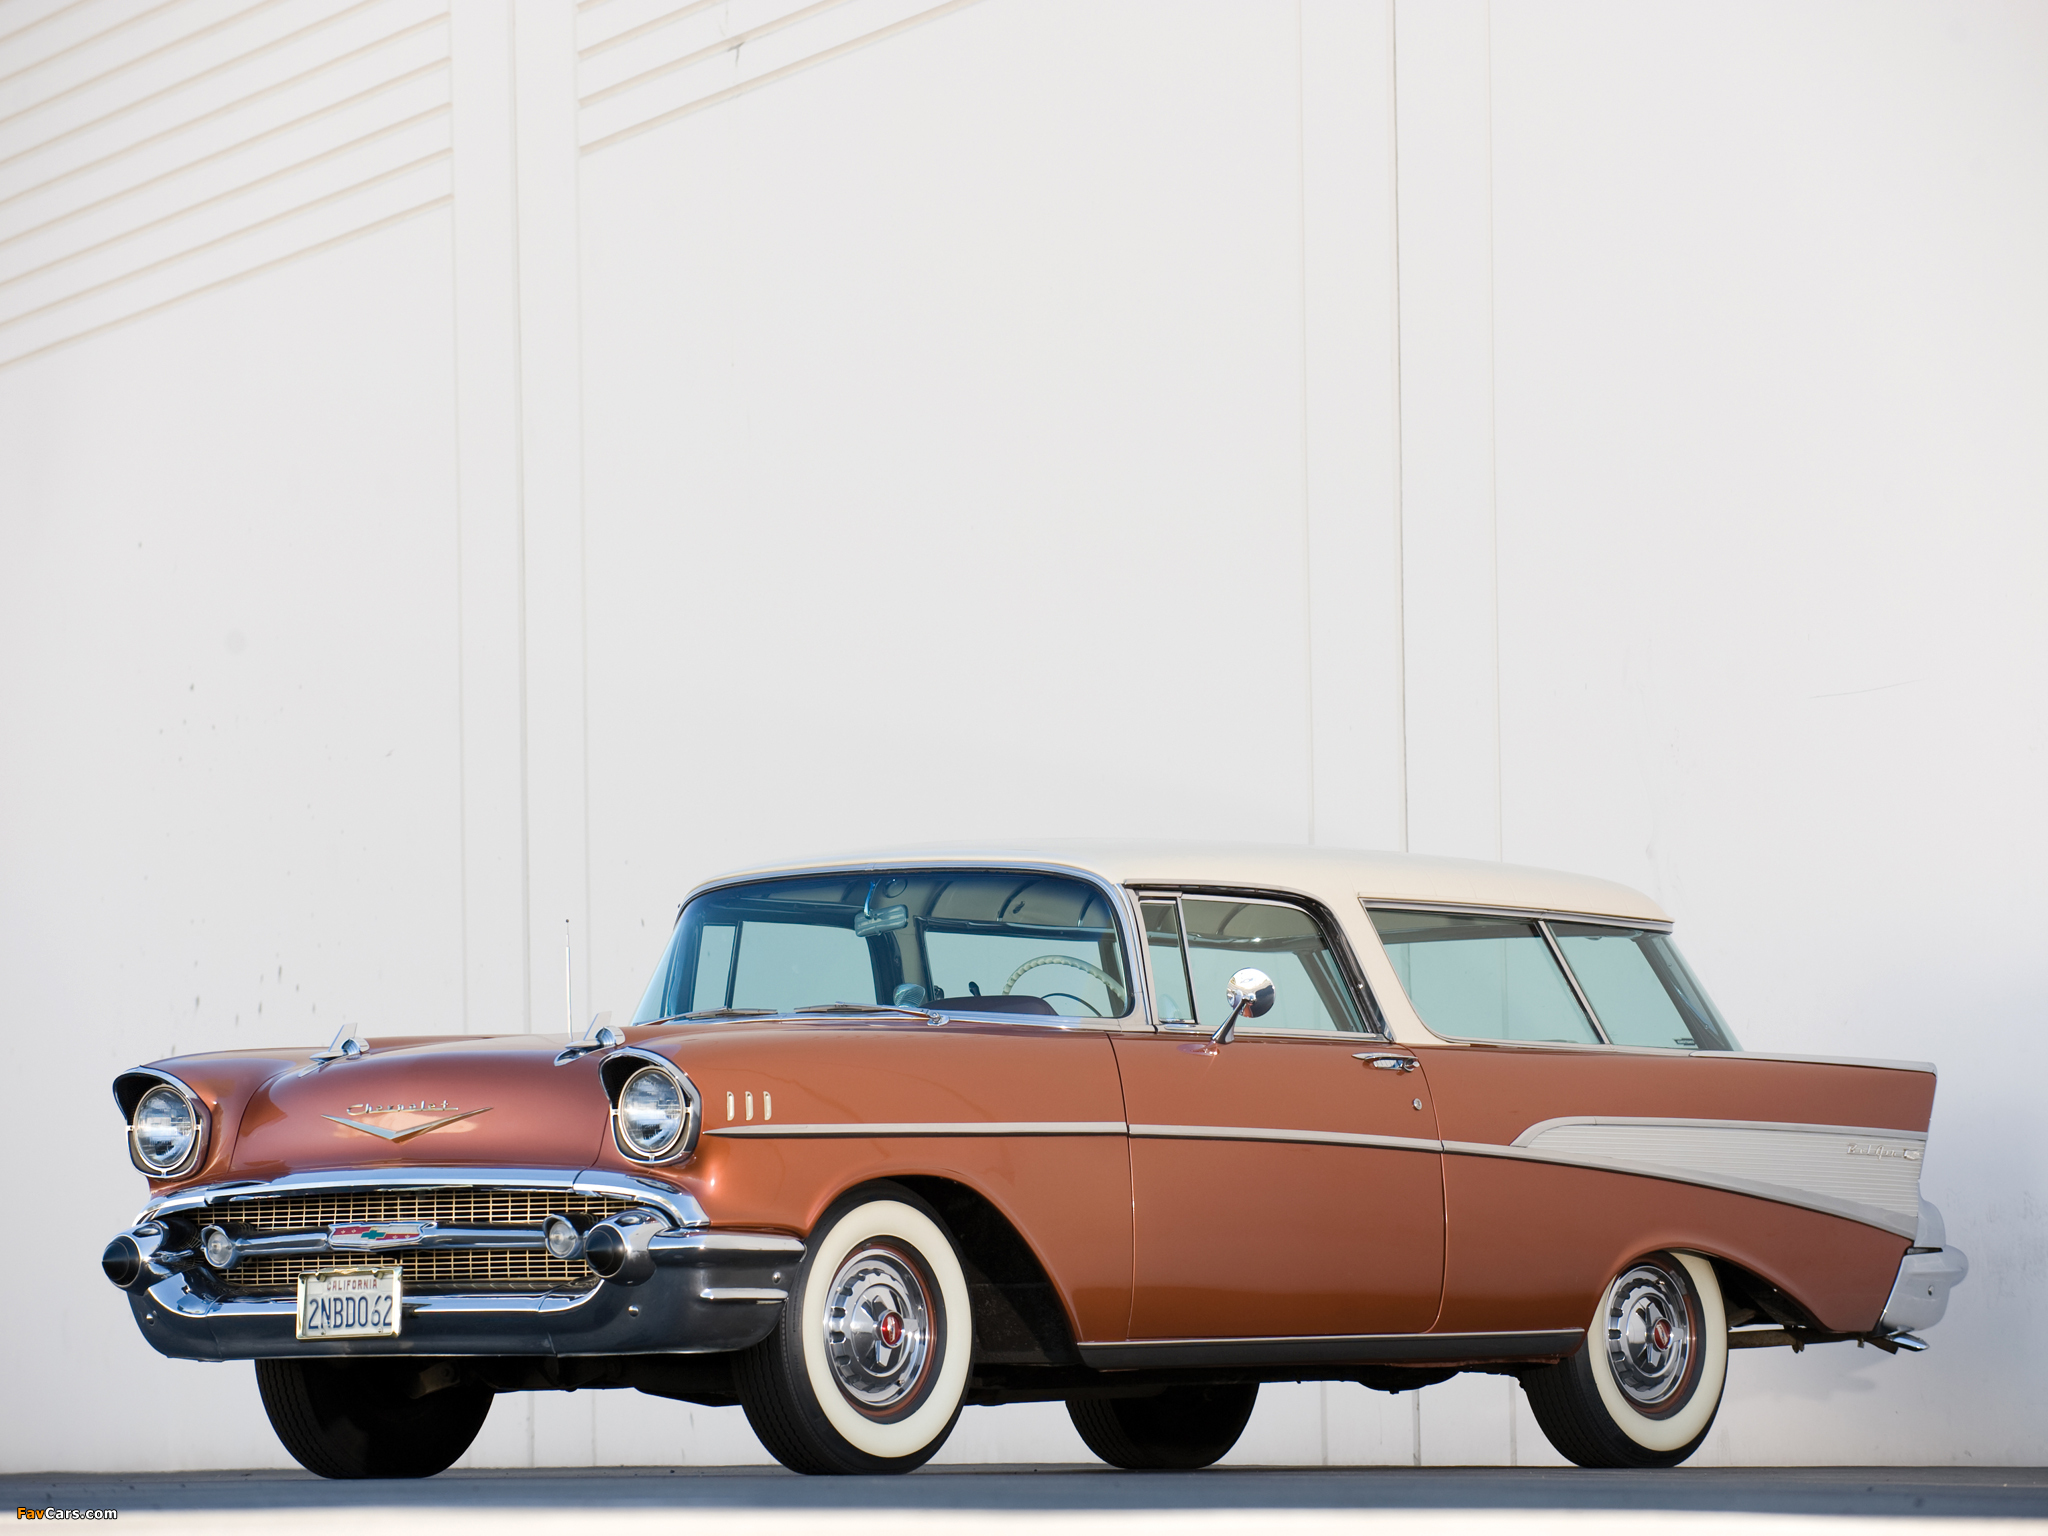 2048x1536 - Chevrolet Nomad Wallpapers 20